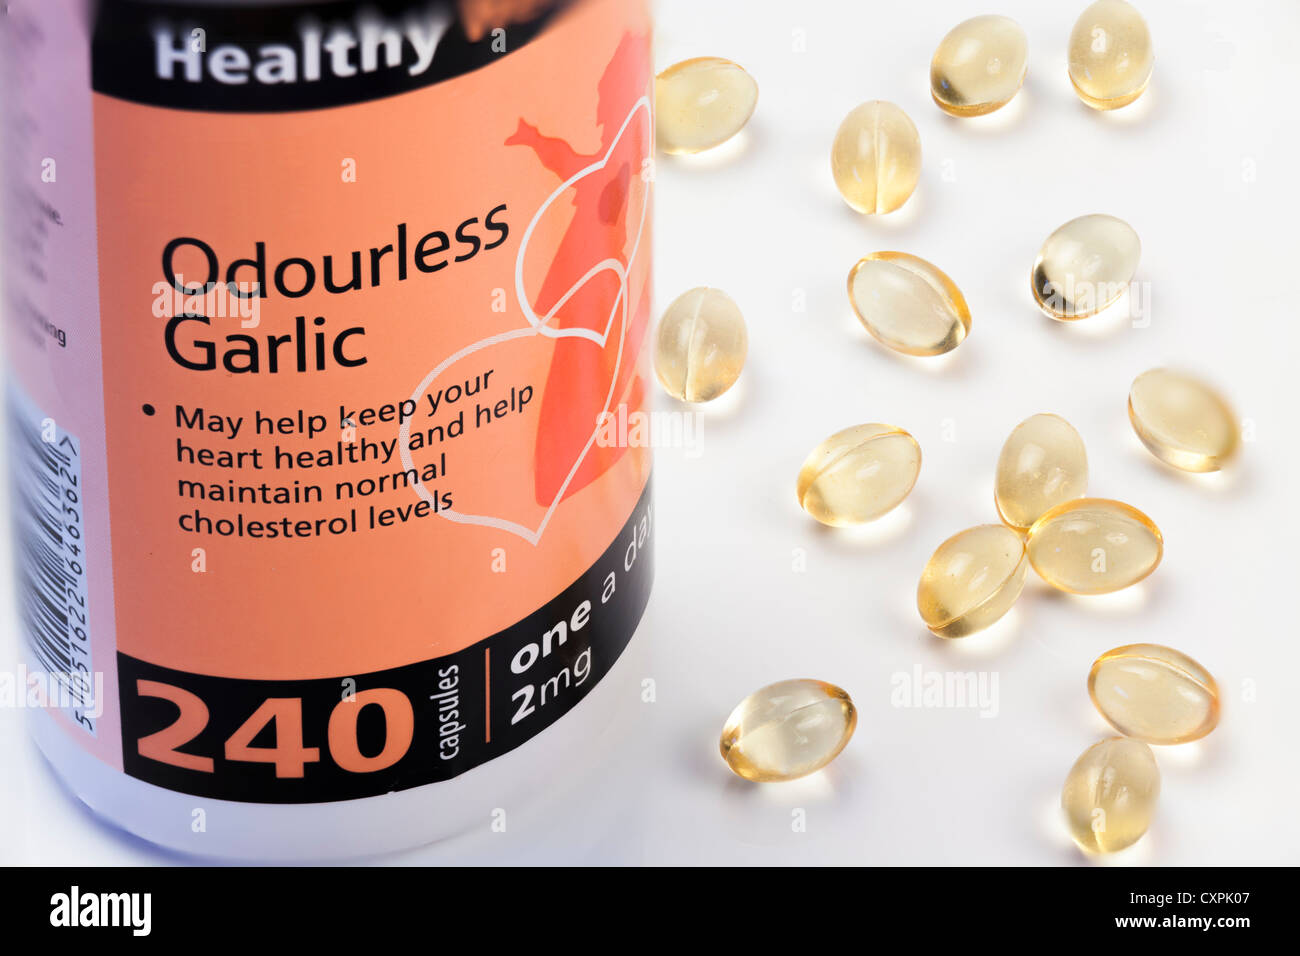 Close up studio still life of Odourless Garlic Capsules and container. - Stock Image